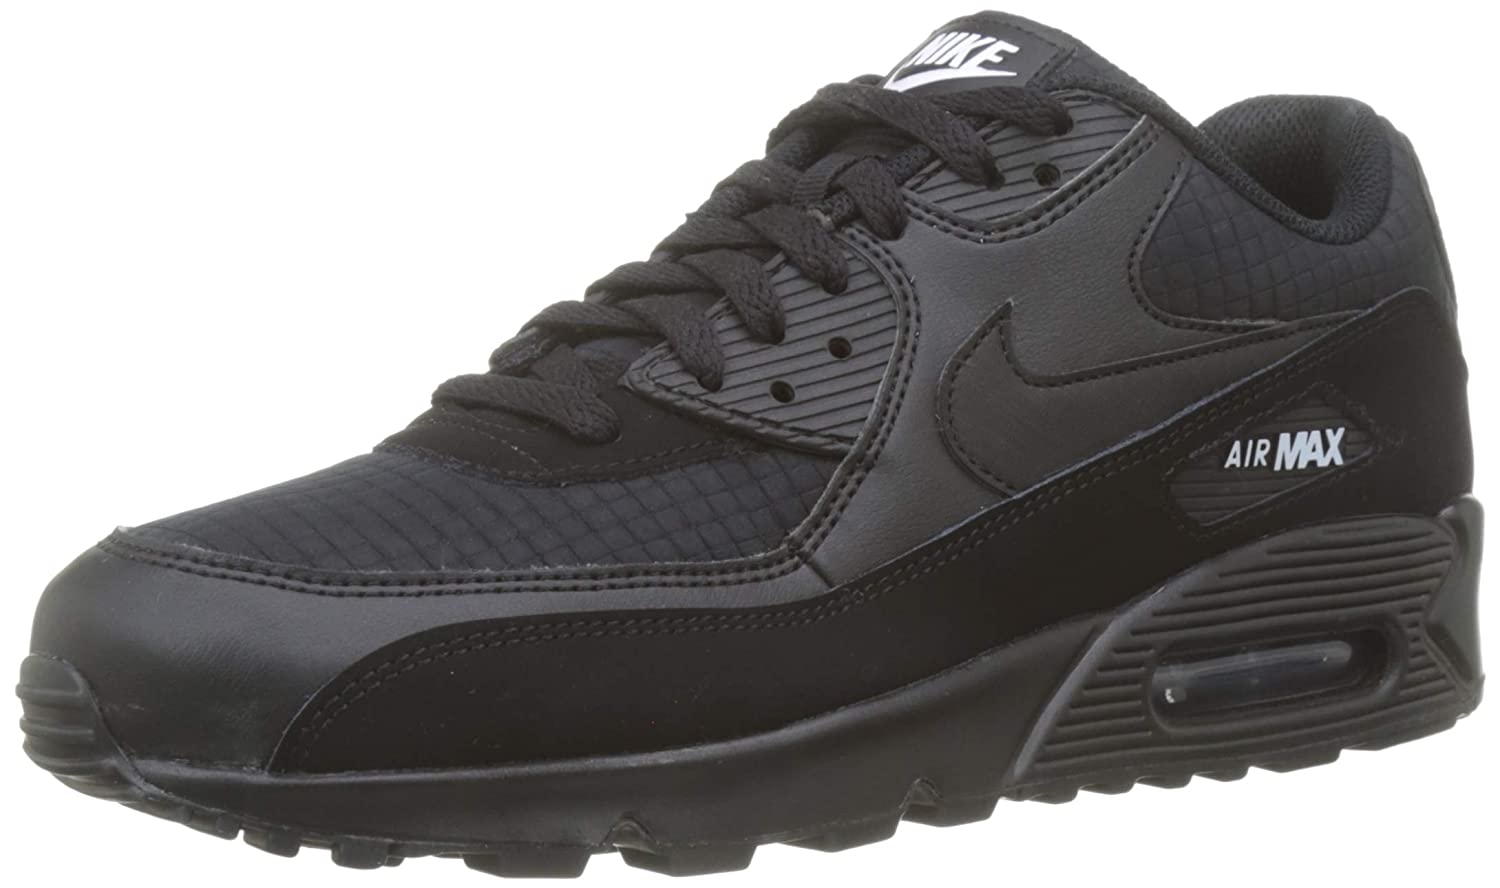 sports shoes e847d 11994 Amazon.com   Nike Mens Air Max 90 Essential Running Shoes Black White  AJ1285-019 Size 13   Road Running